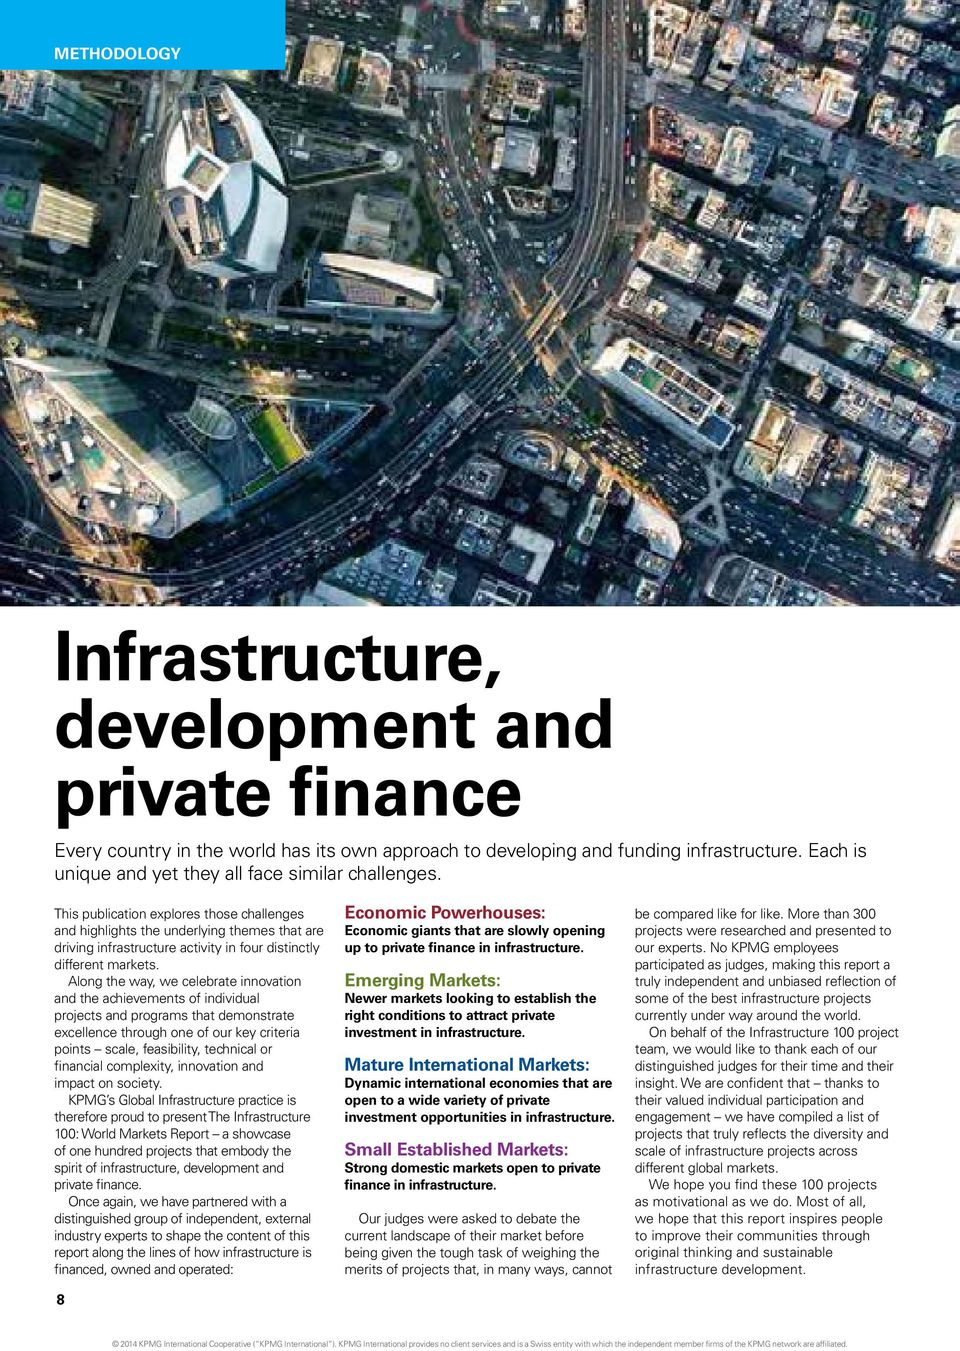 This publication explores those challenges and highlights the underlying themes that are driving infrastructure activity in four distinctly different markets.